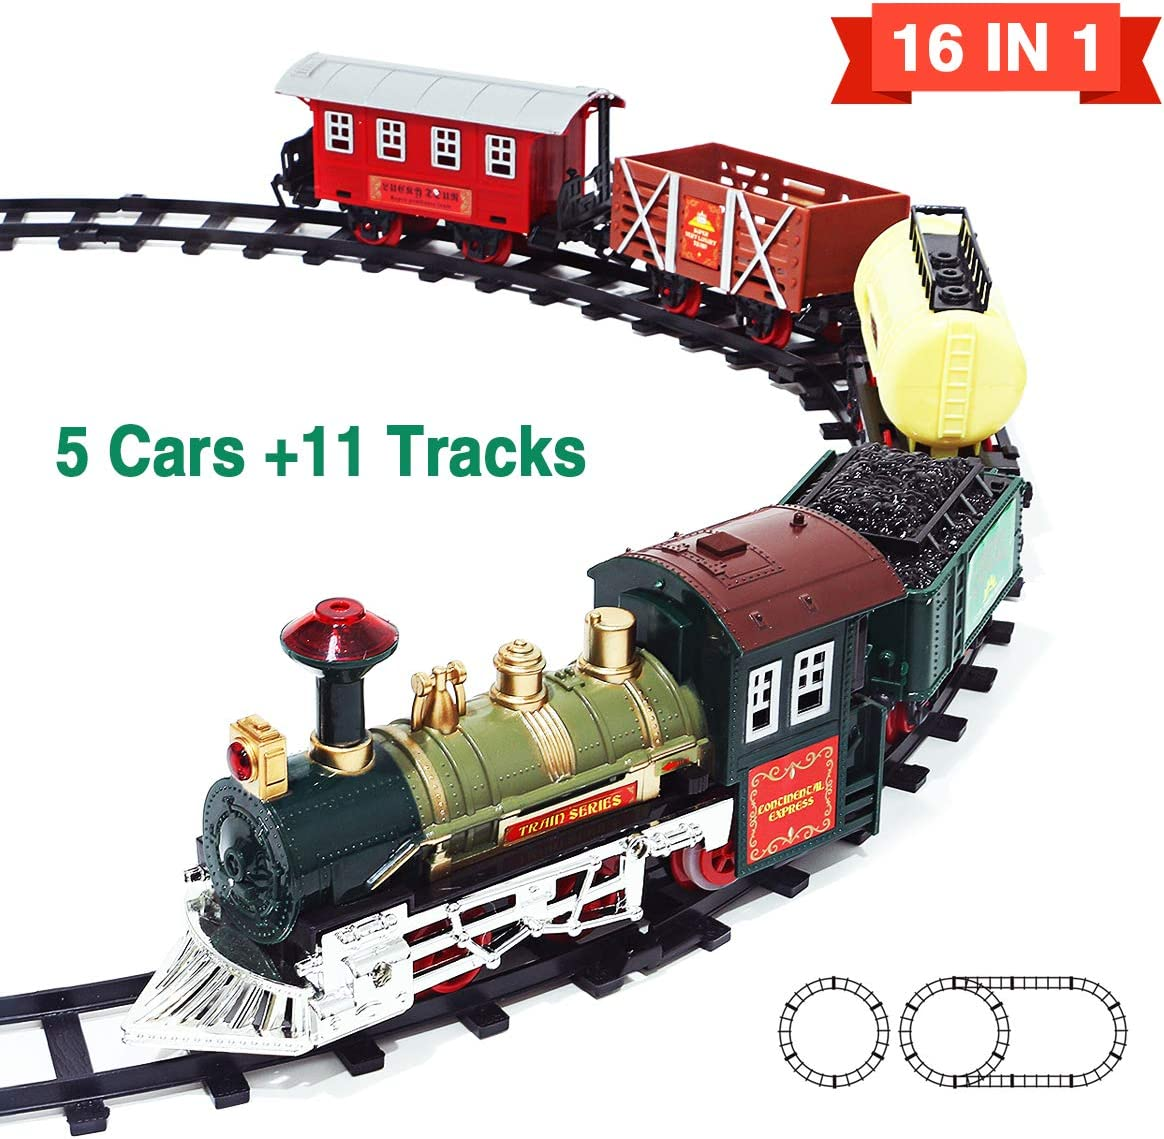 Amazon coupon code for New Eddition 16 in 1 Train Sets